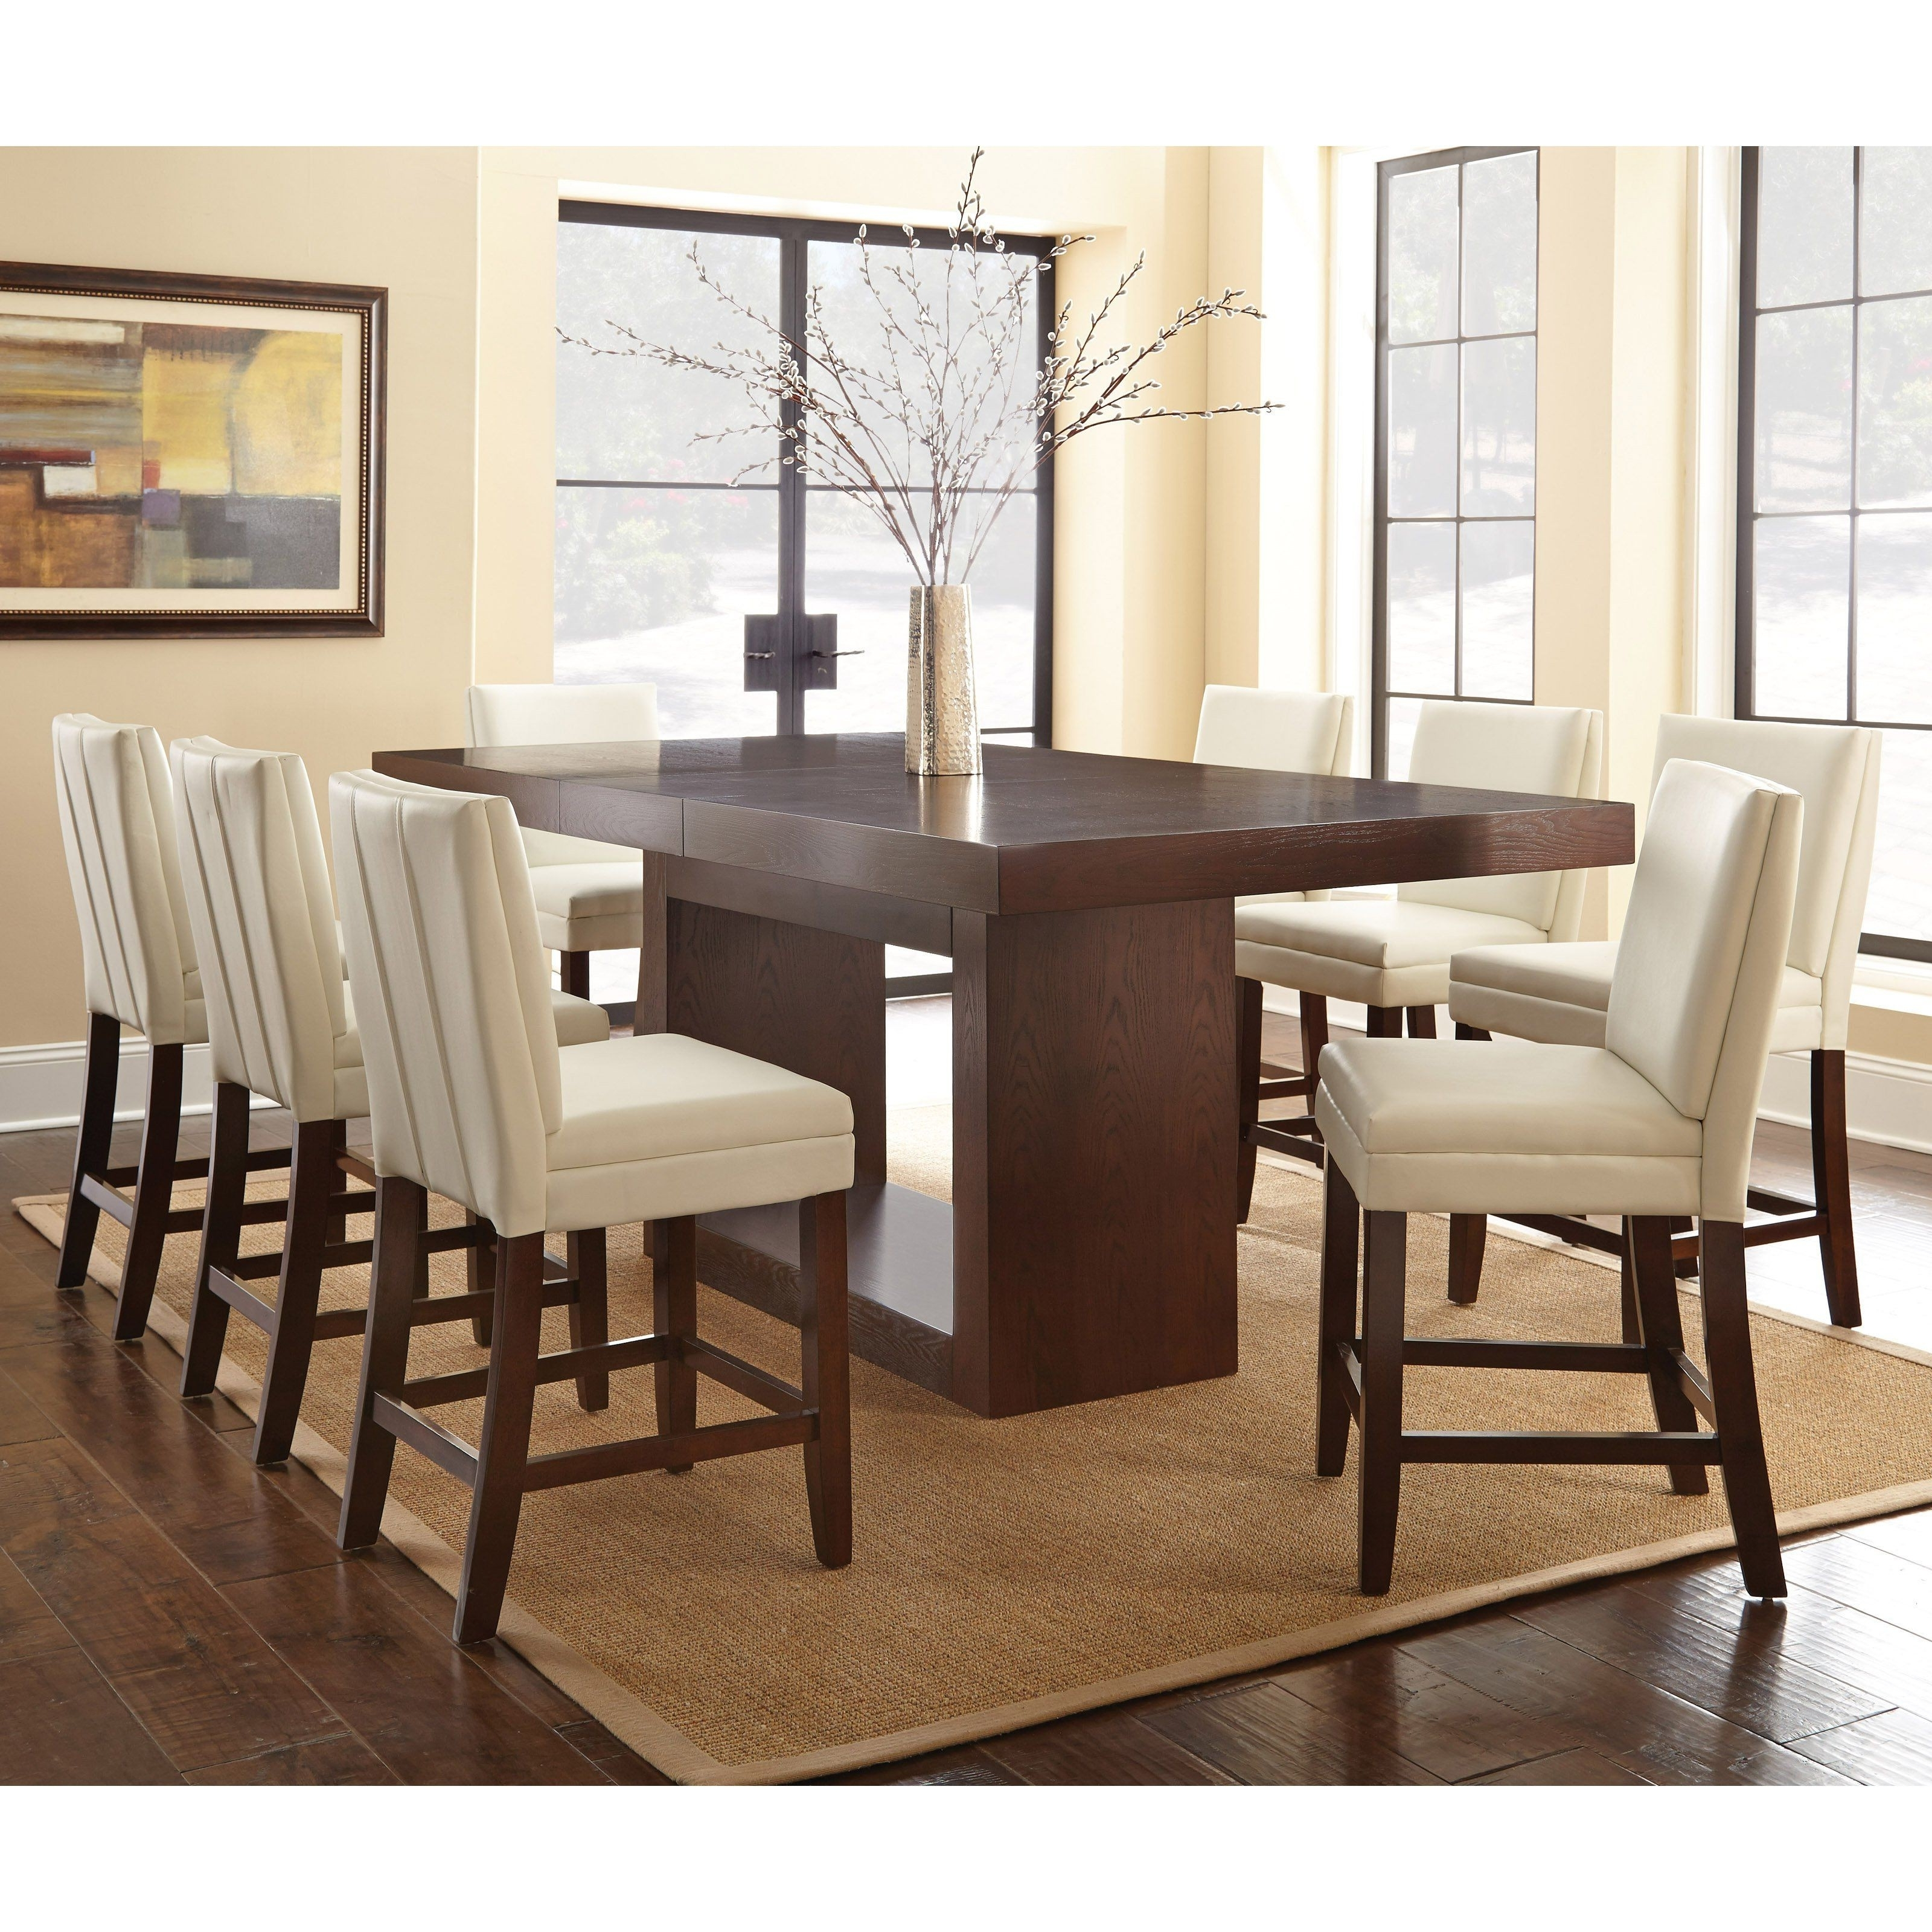 Well Liked Craftsman 9 Piece Extension Dining Sets In The 28 Best Of Dining Table Set San Diego – Welovedandelion (View 24 of 25)